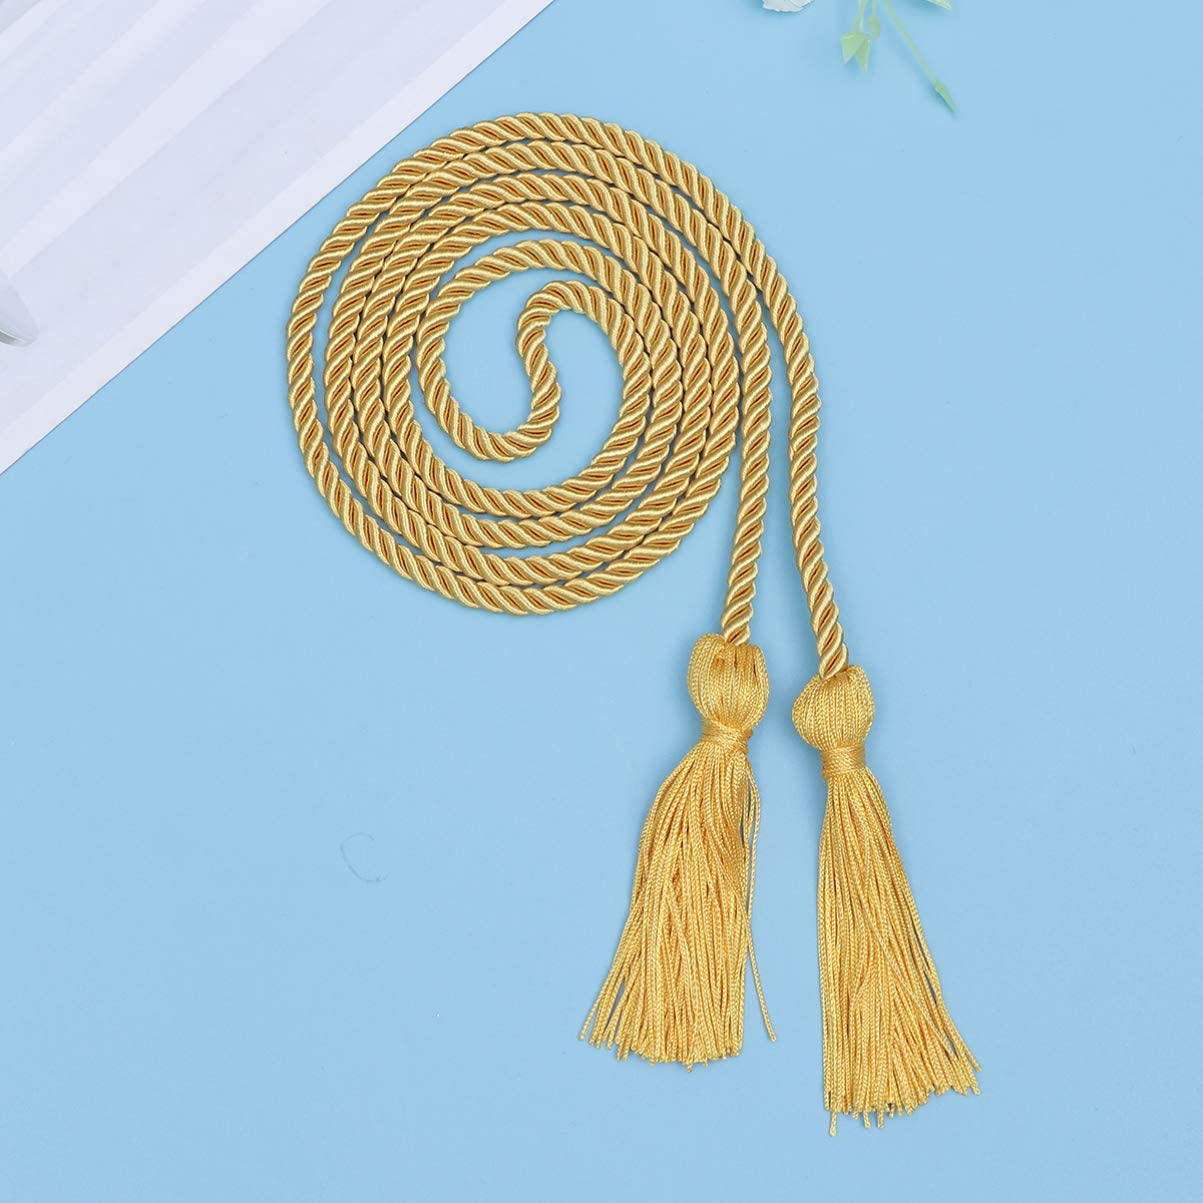 ARTIBETTER 2pcs 2020 Graduation Tassels Bulk Handmade Honor Cords Rope for Braided Bachelor Academic Grad Party Decorations Accessories